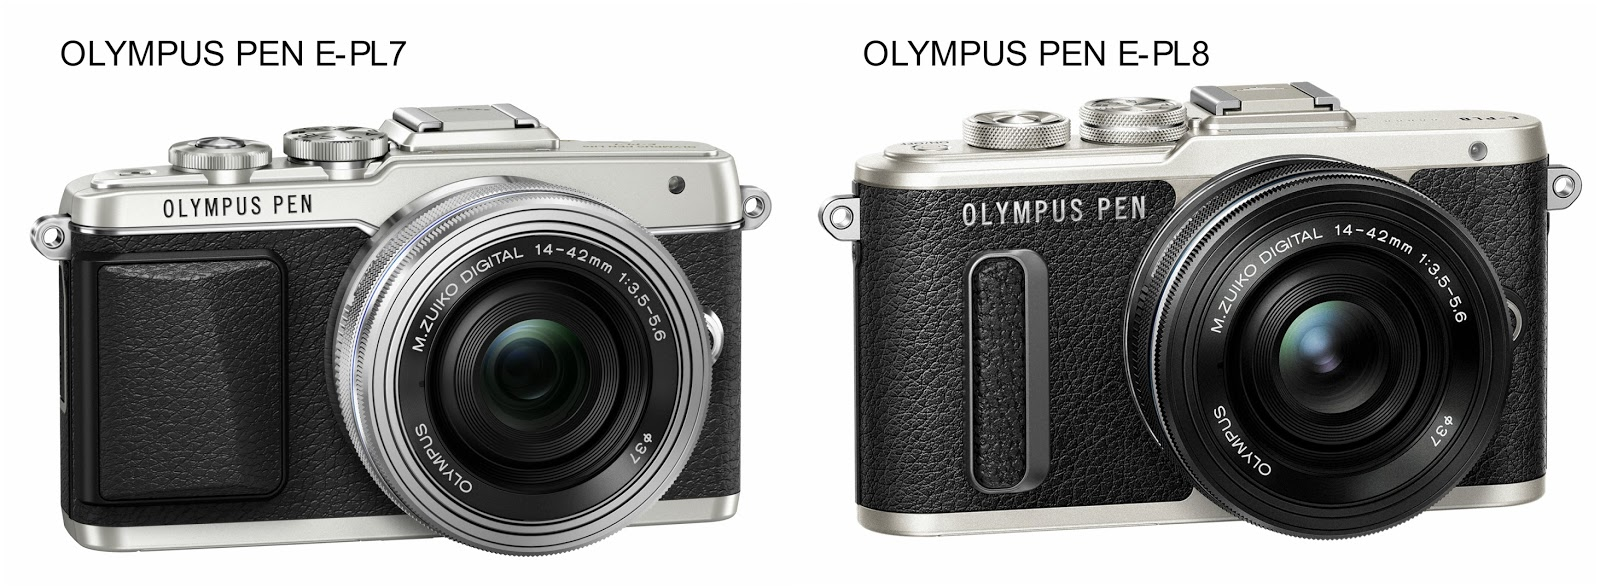 Olympus PEN E-PL7 versus E-PL8, size comparsion, design comparsion